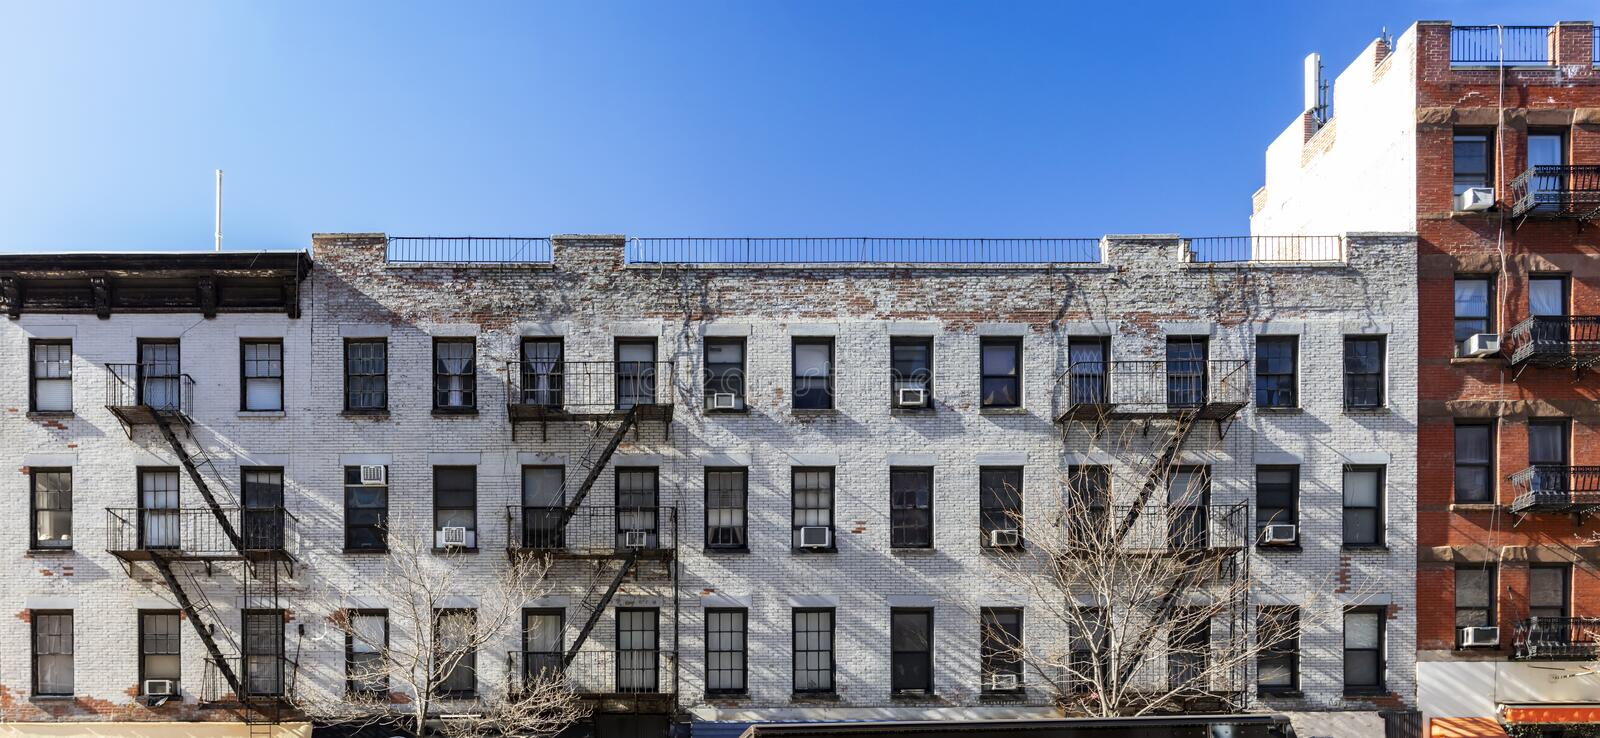 Exterior view of the facade of an old brick apartment buildings with windows and fire escapes in New York City stock image